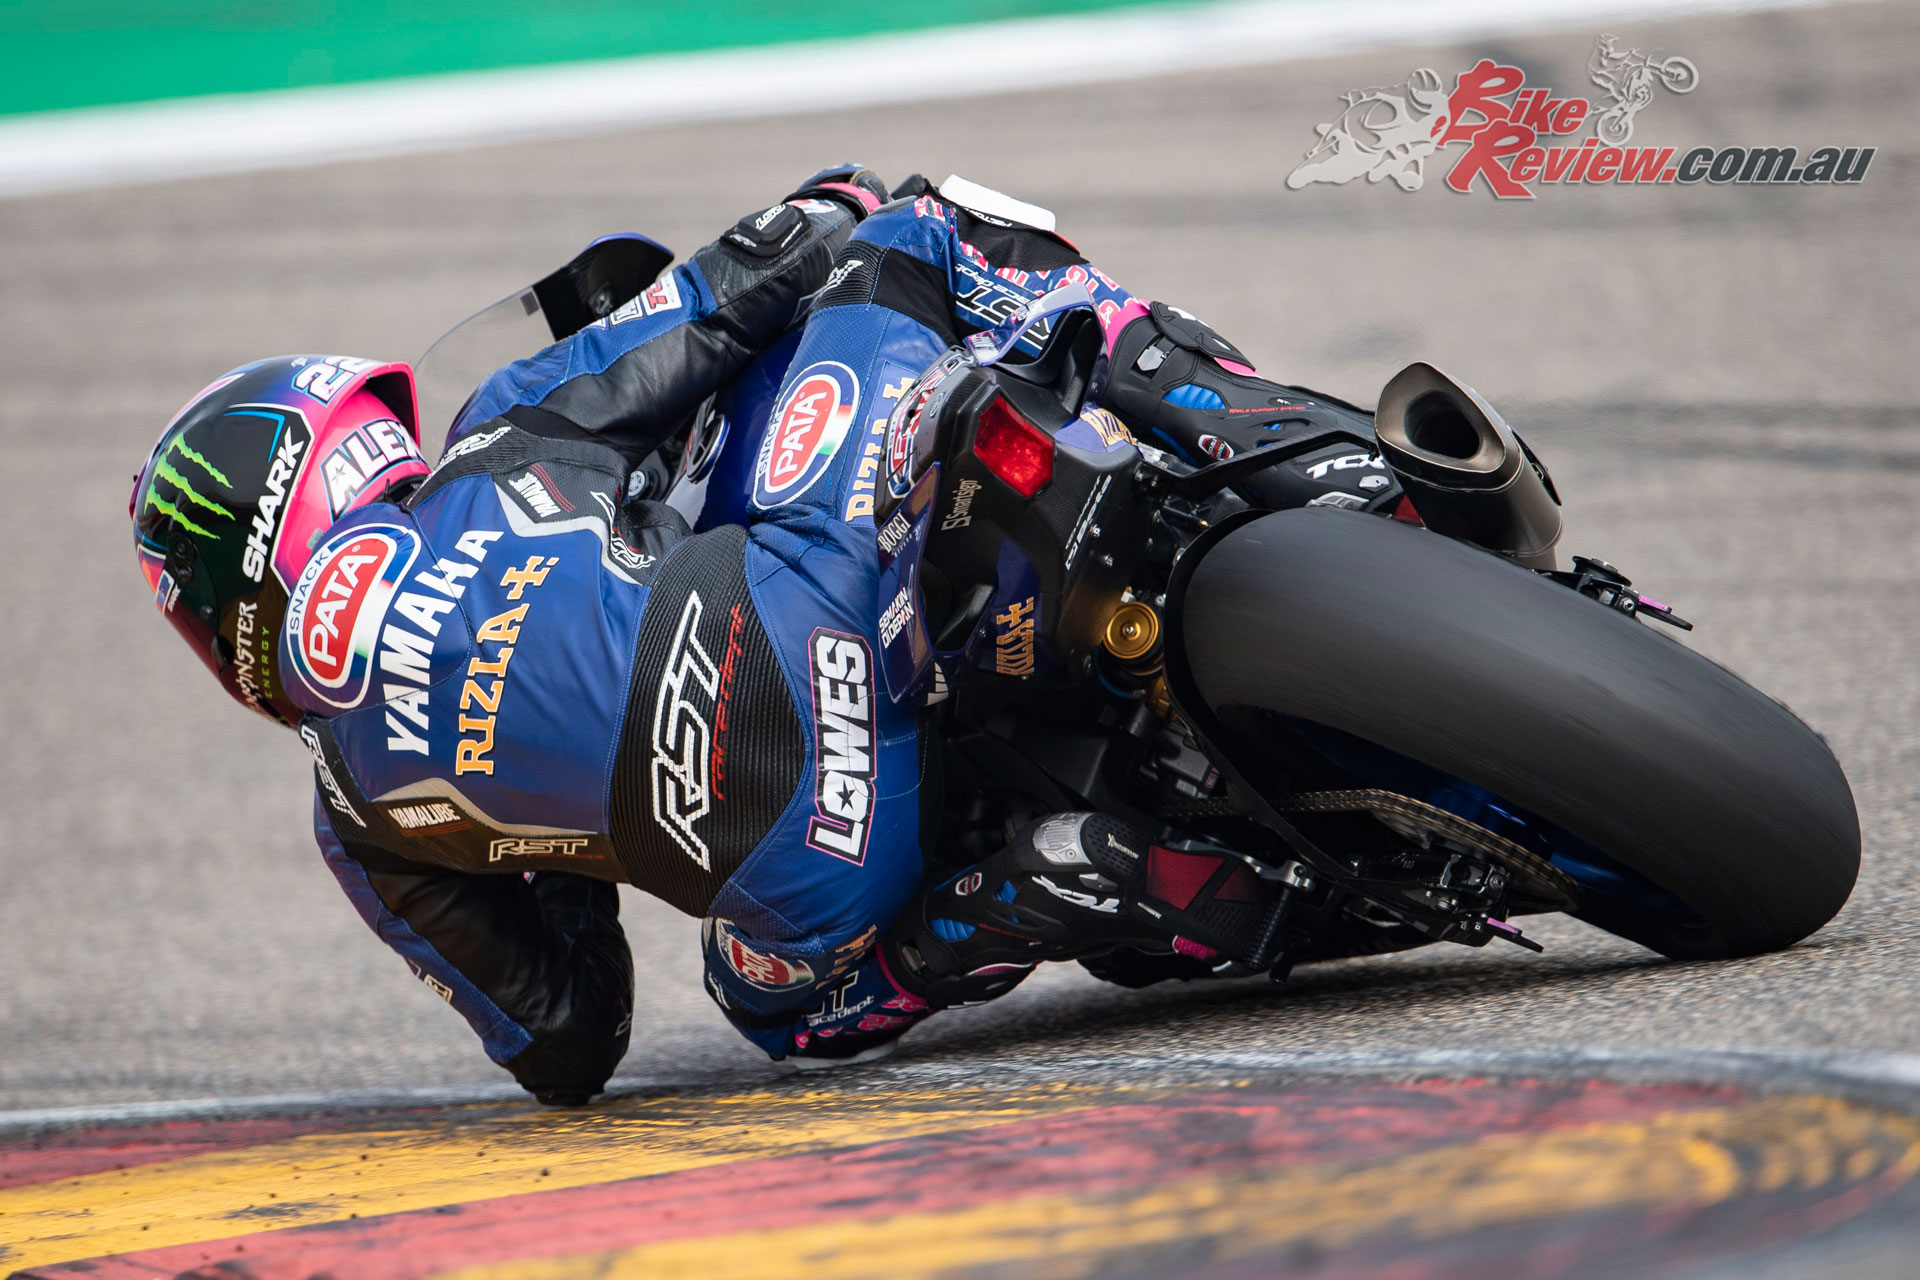 Alex Lowes - Aragon Test November 2018 - Image by GeeBee Images